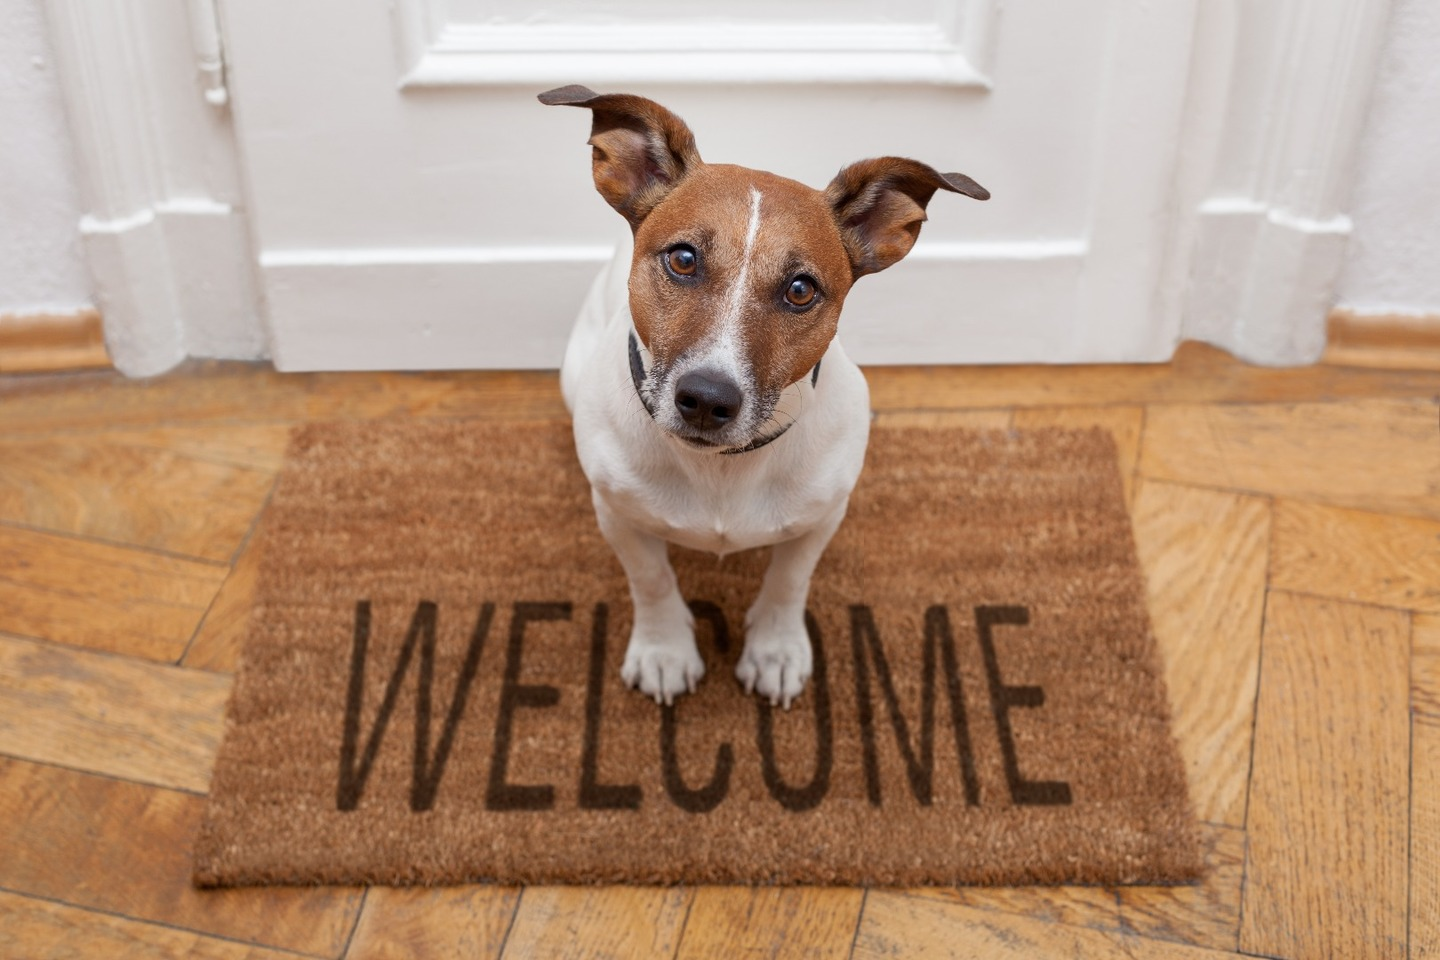 bigstock-Dog-Welcome-Home-36814013.jpg